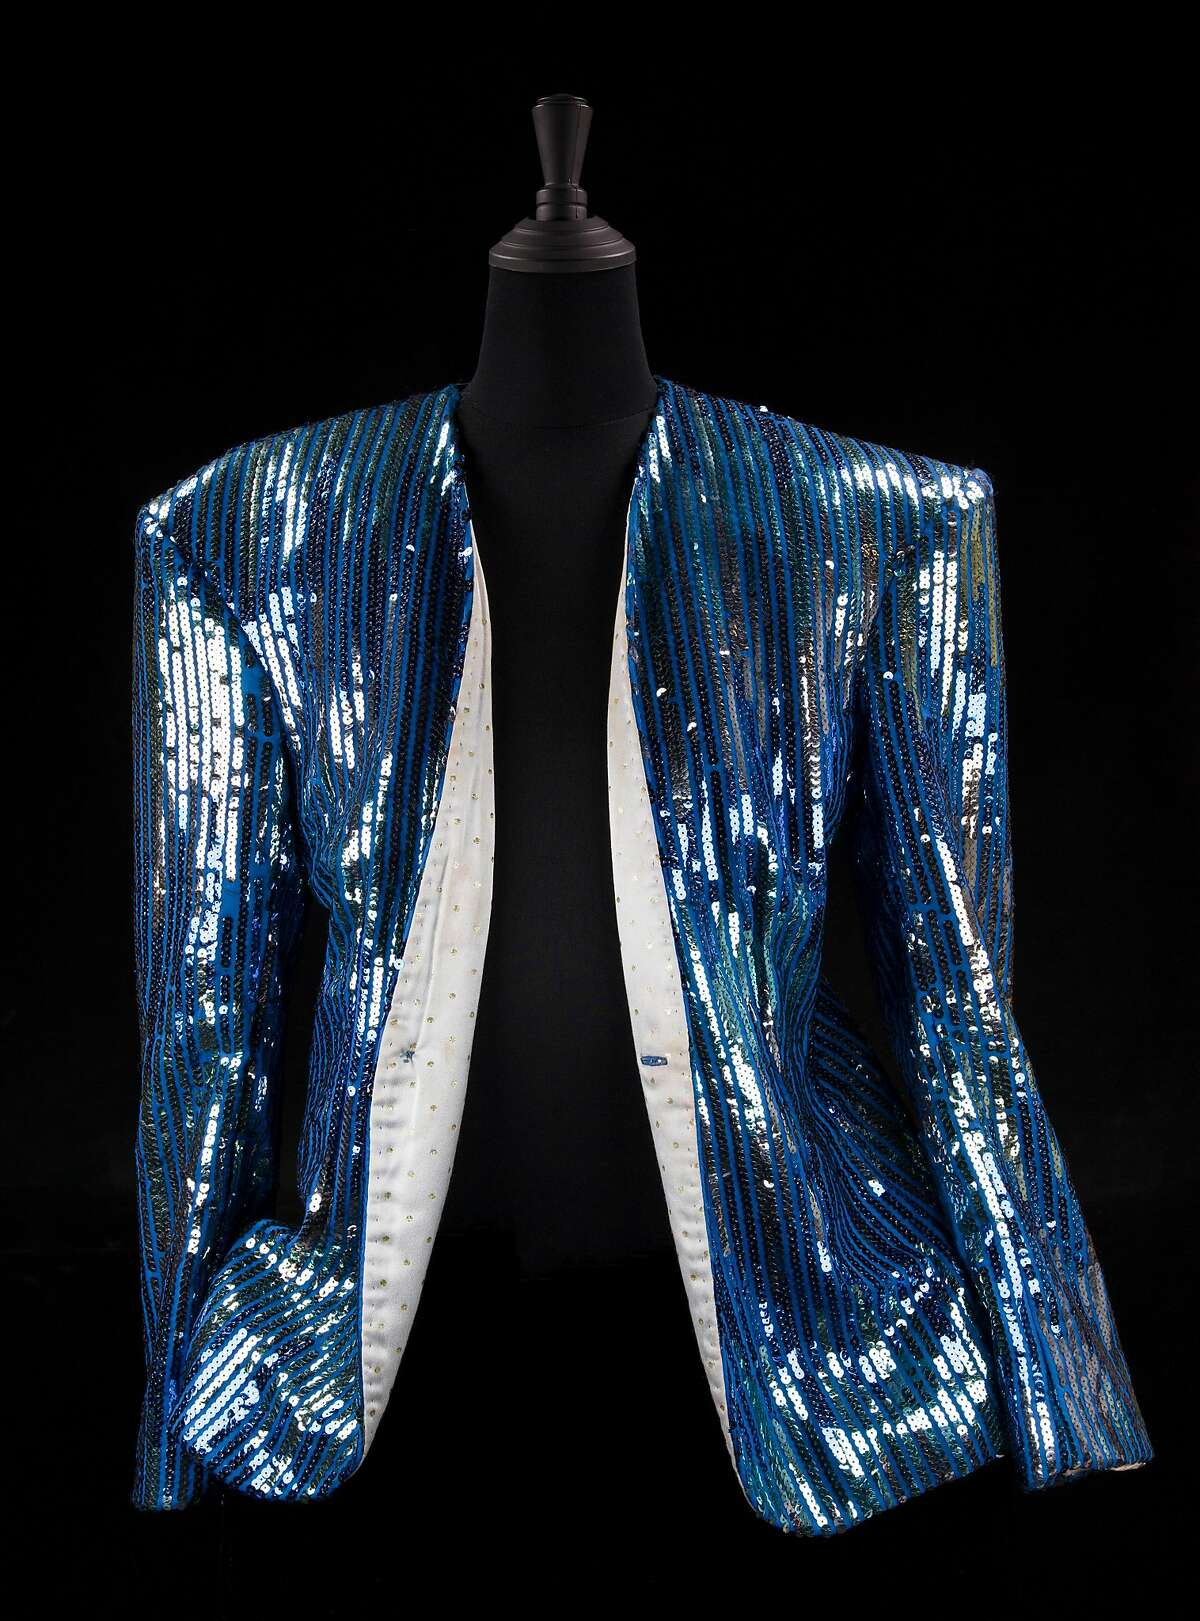 Sylvester Jacket, Photo by the Oakland Museum of California. The Sylvester collection, Courtesy of the Gay, Lesbian, Bisexual, Transgender Historical Society.